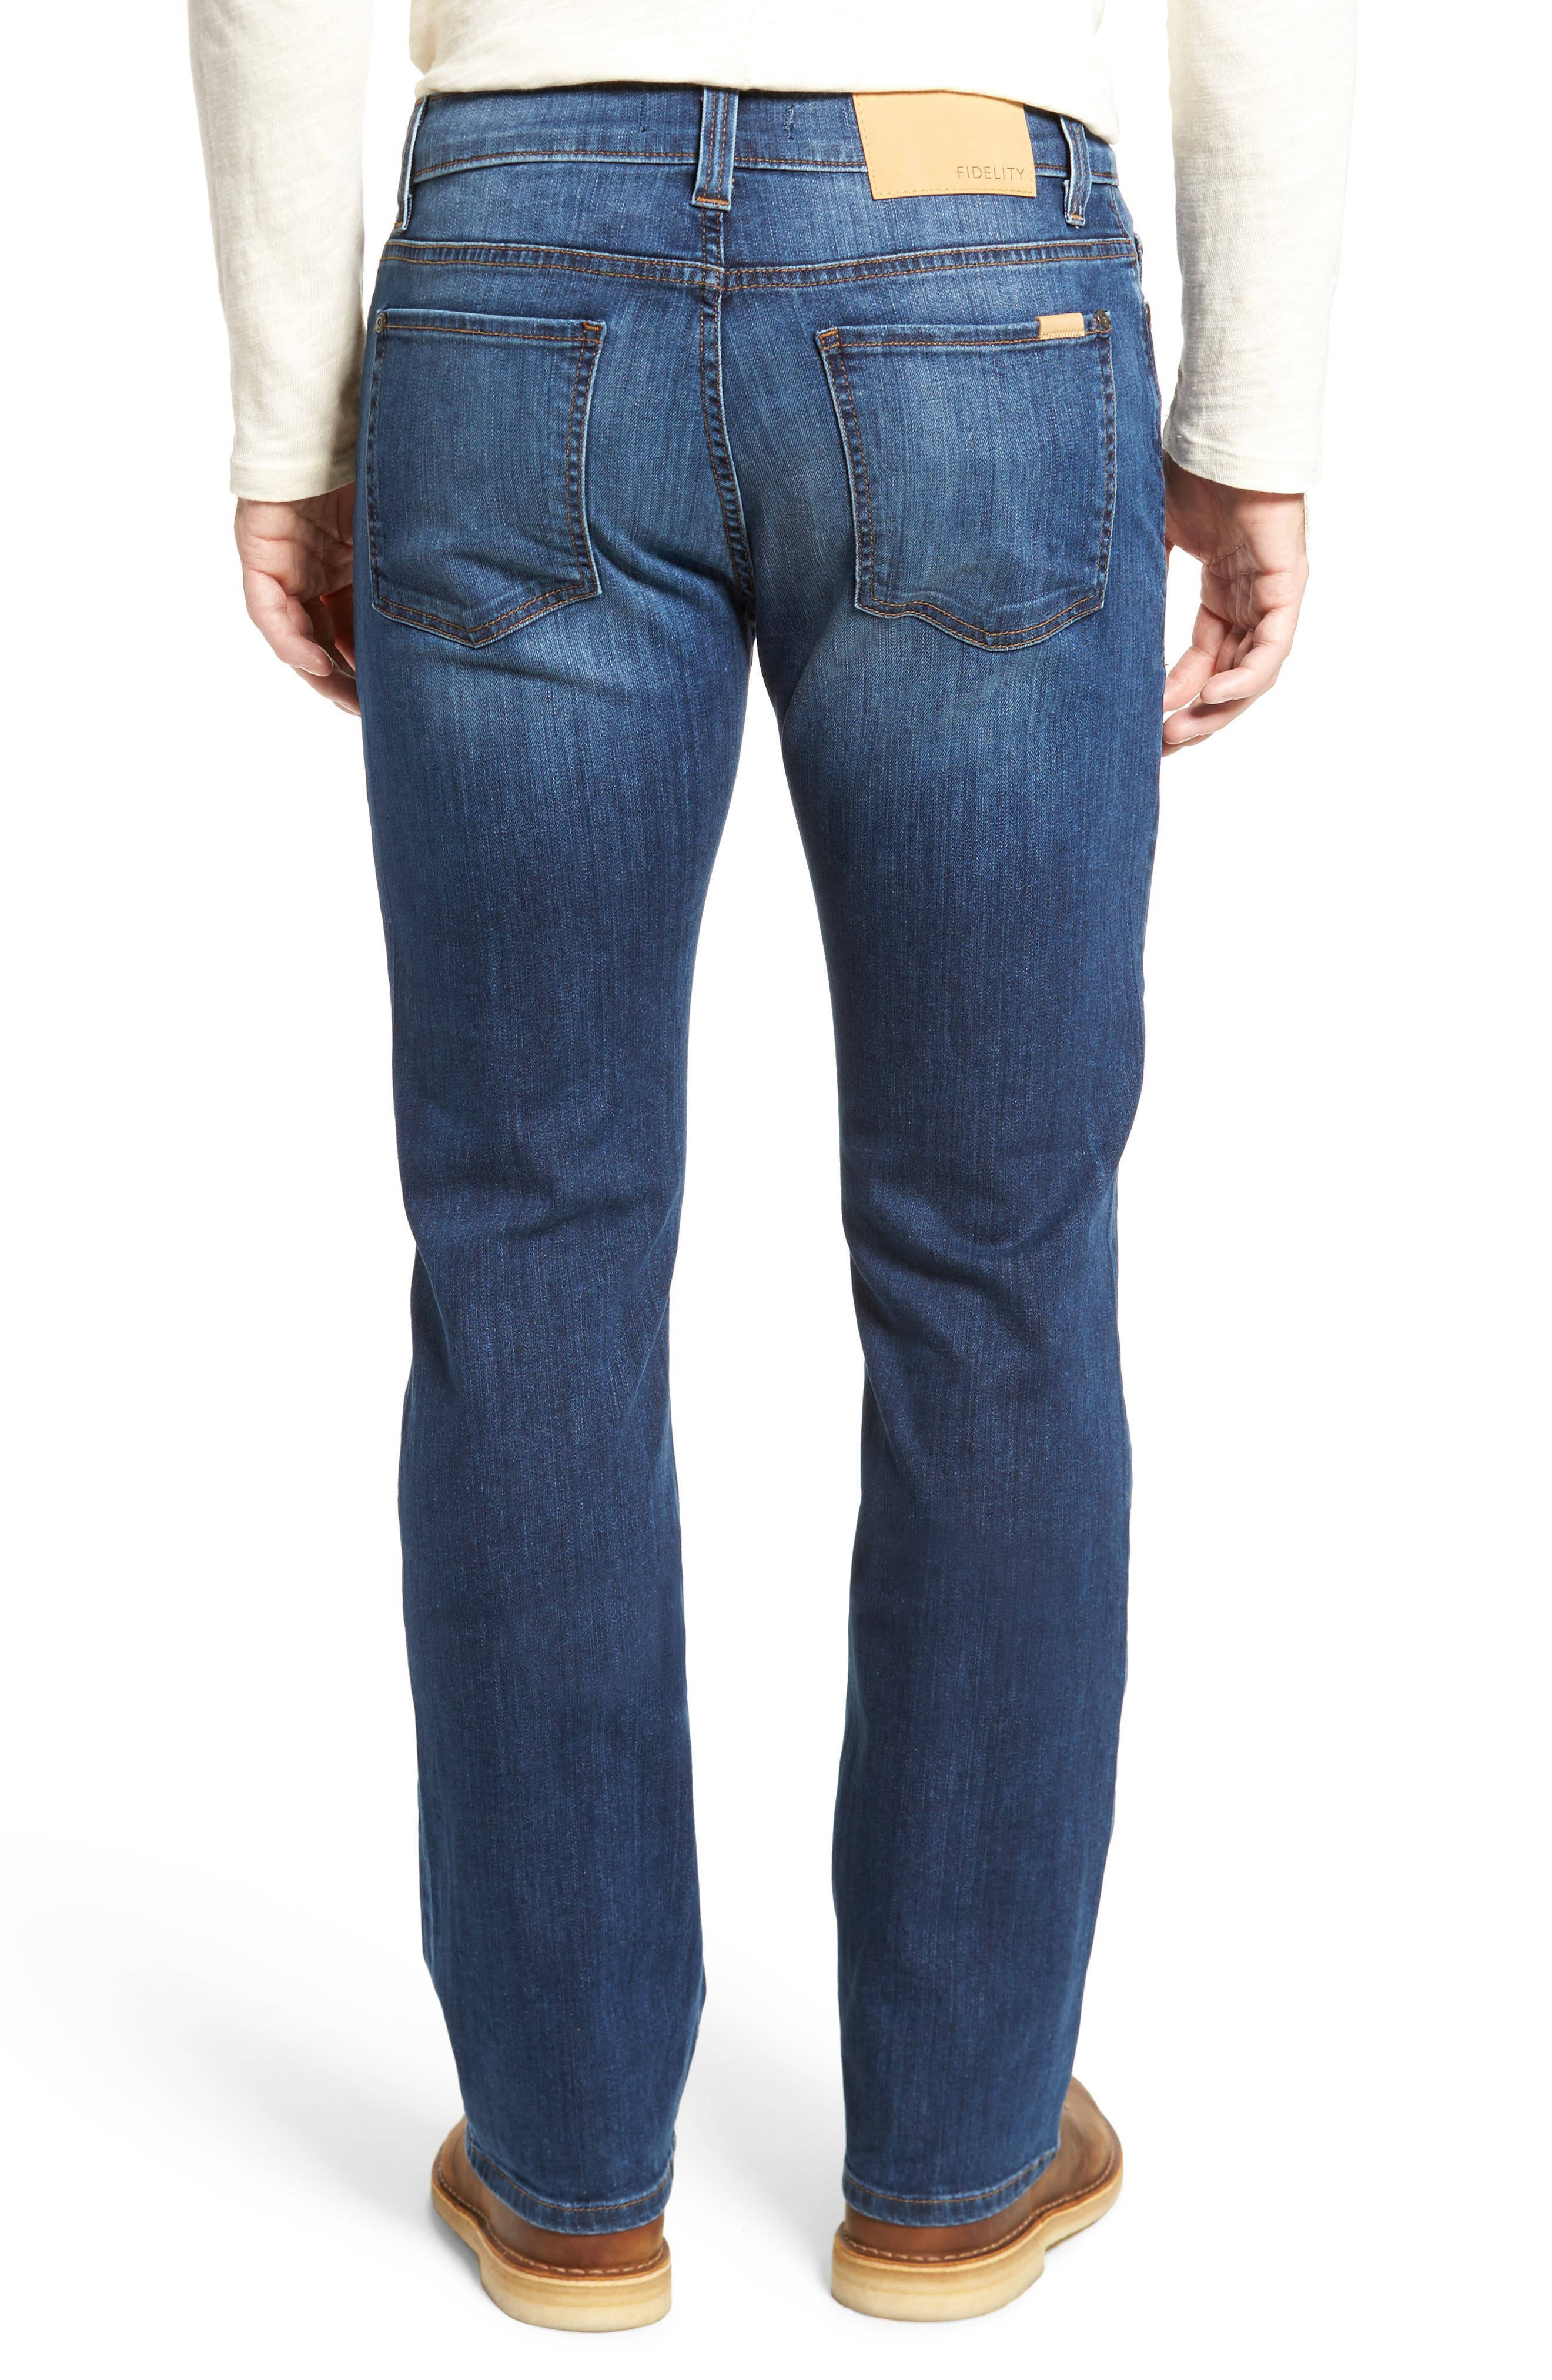 5011 Relaxed Fit Jeans,                             Alternate thumbnail 2, color,                             LIVERPOOL